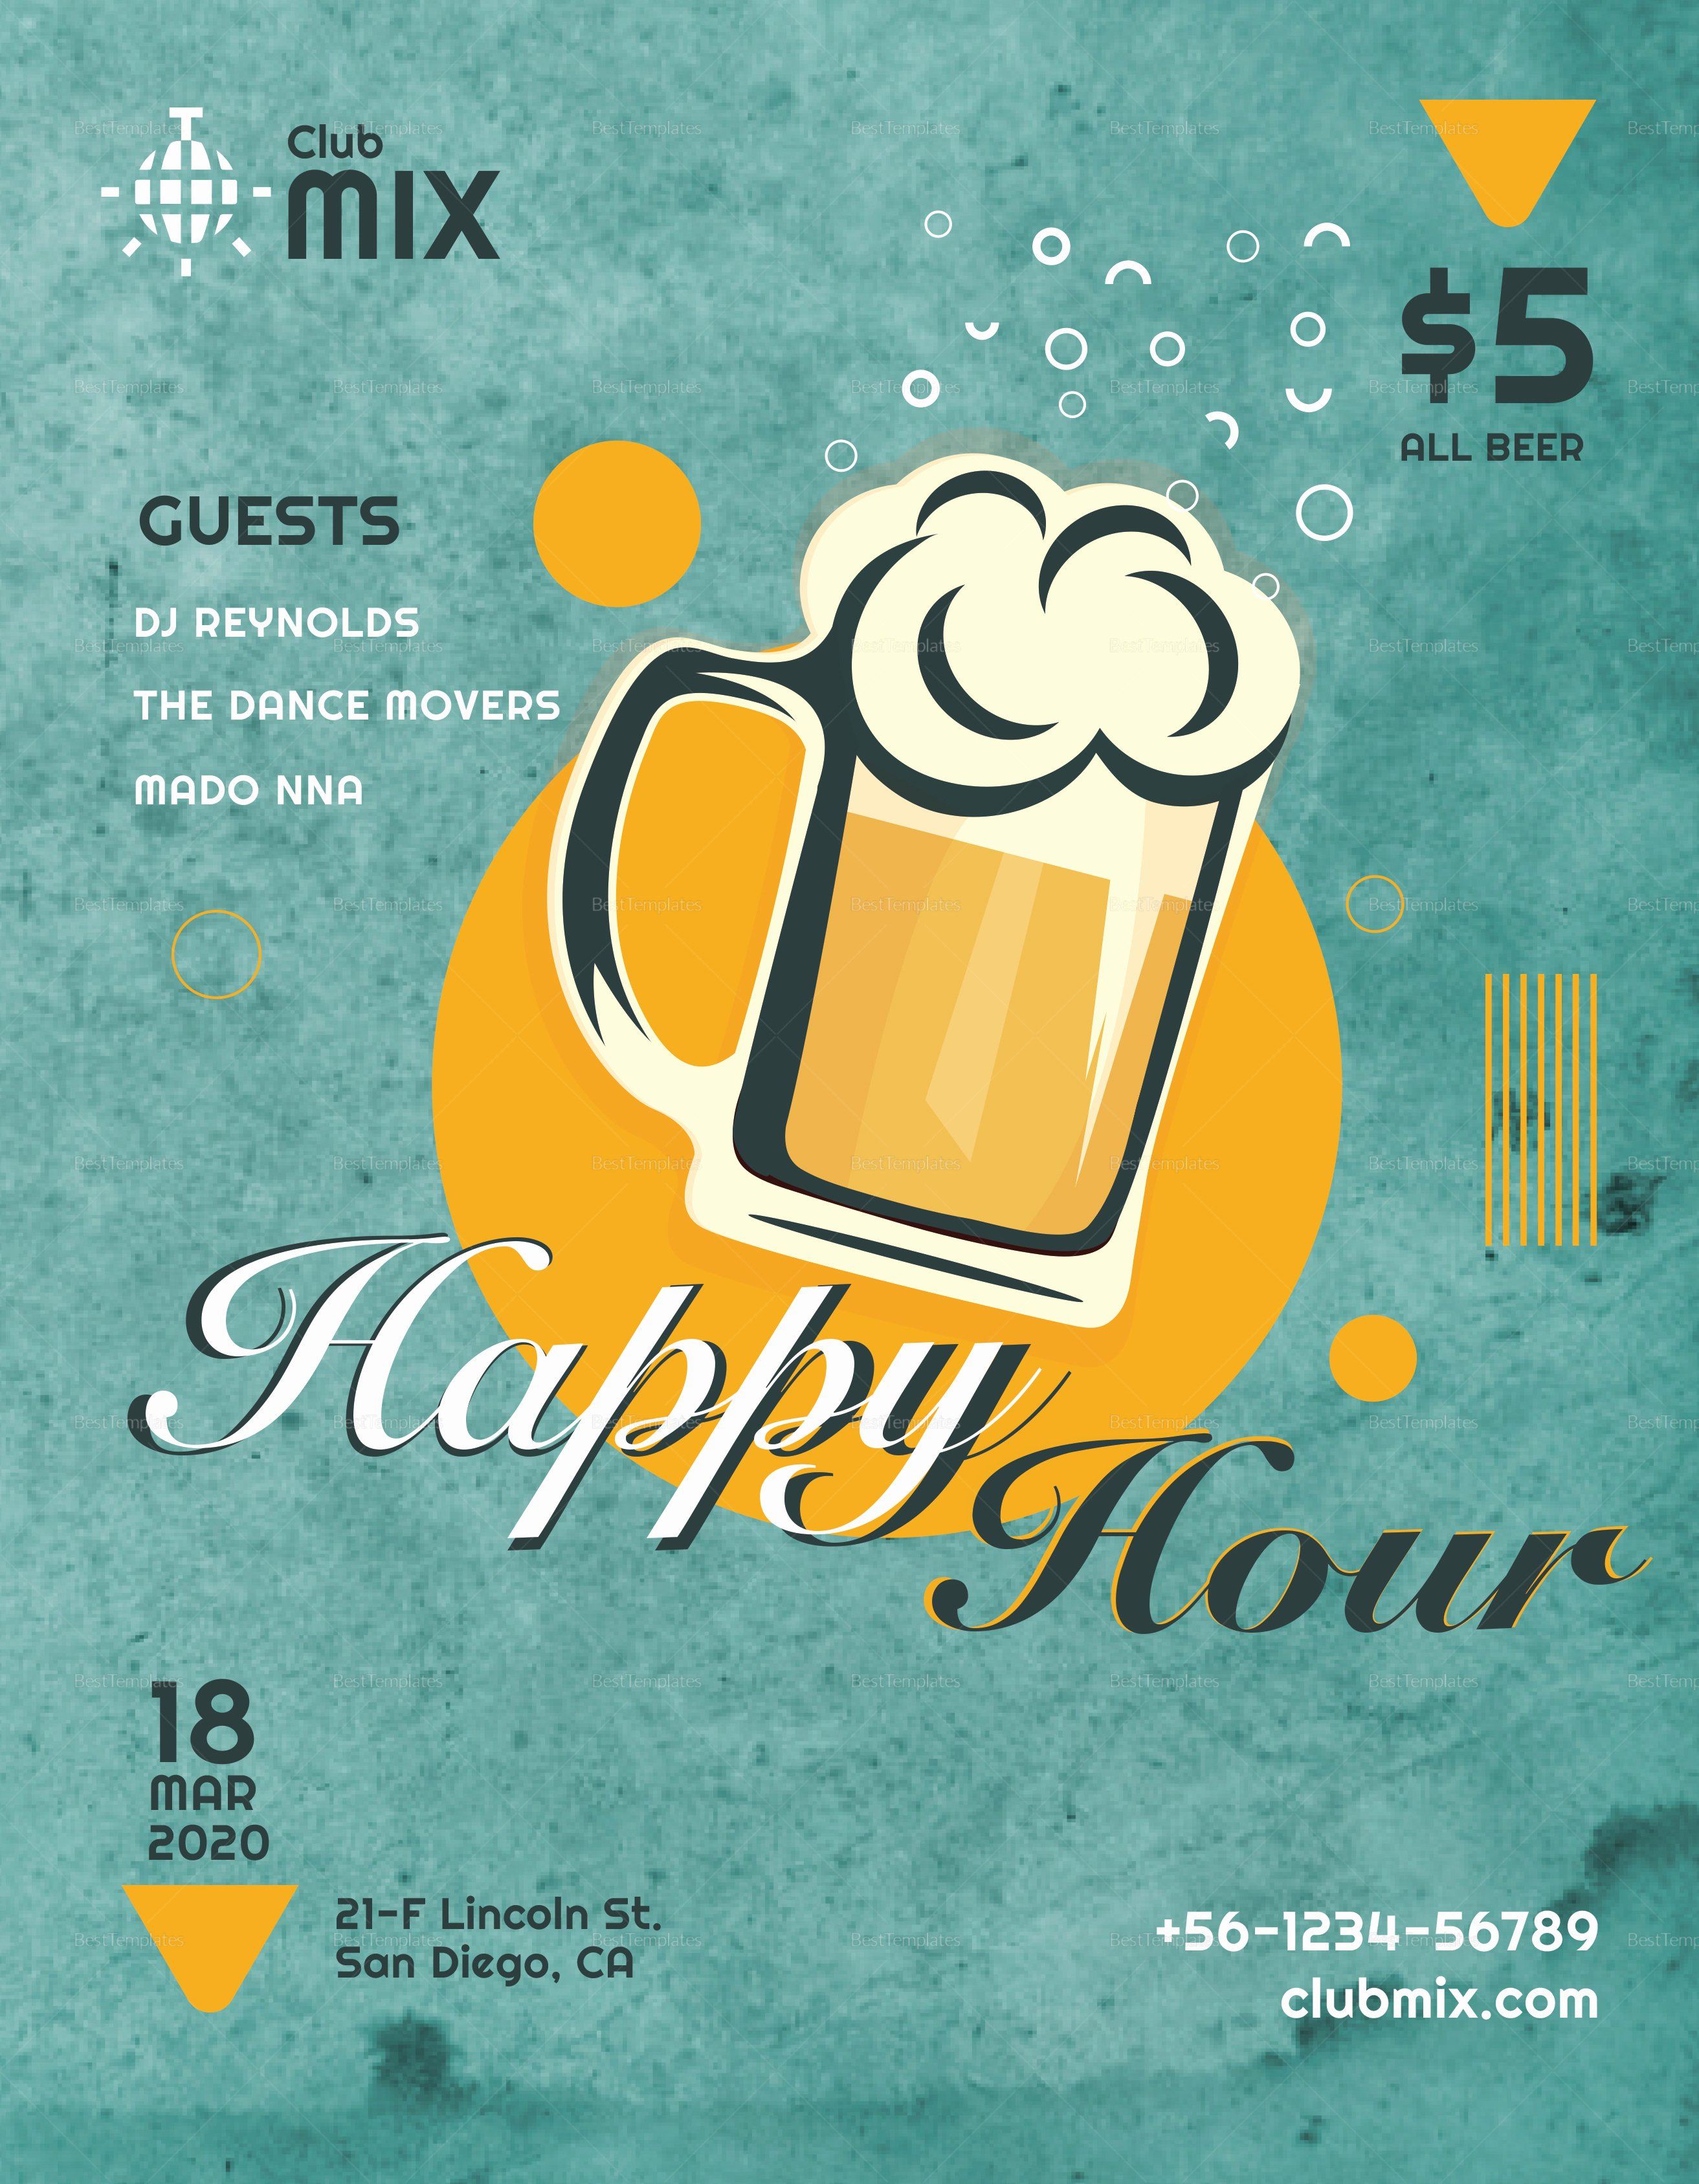 Happy Hour Flyer Template Unique Vintage Happy Hour Flyer Design Template In Psd Word Publisher Illustrator Indesign